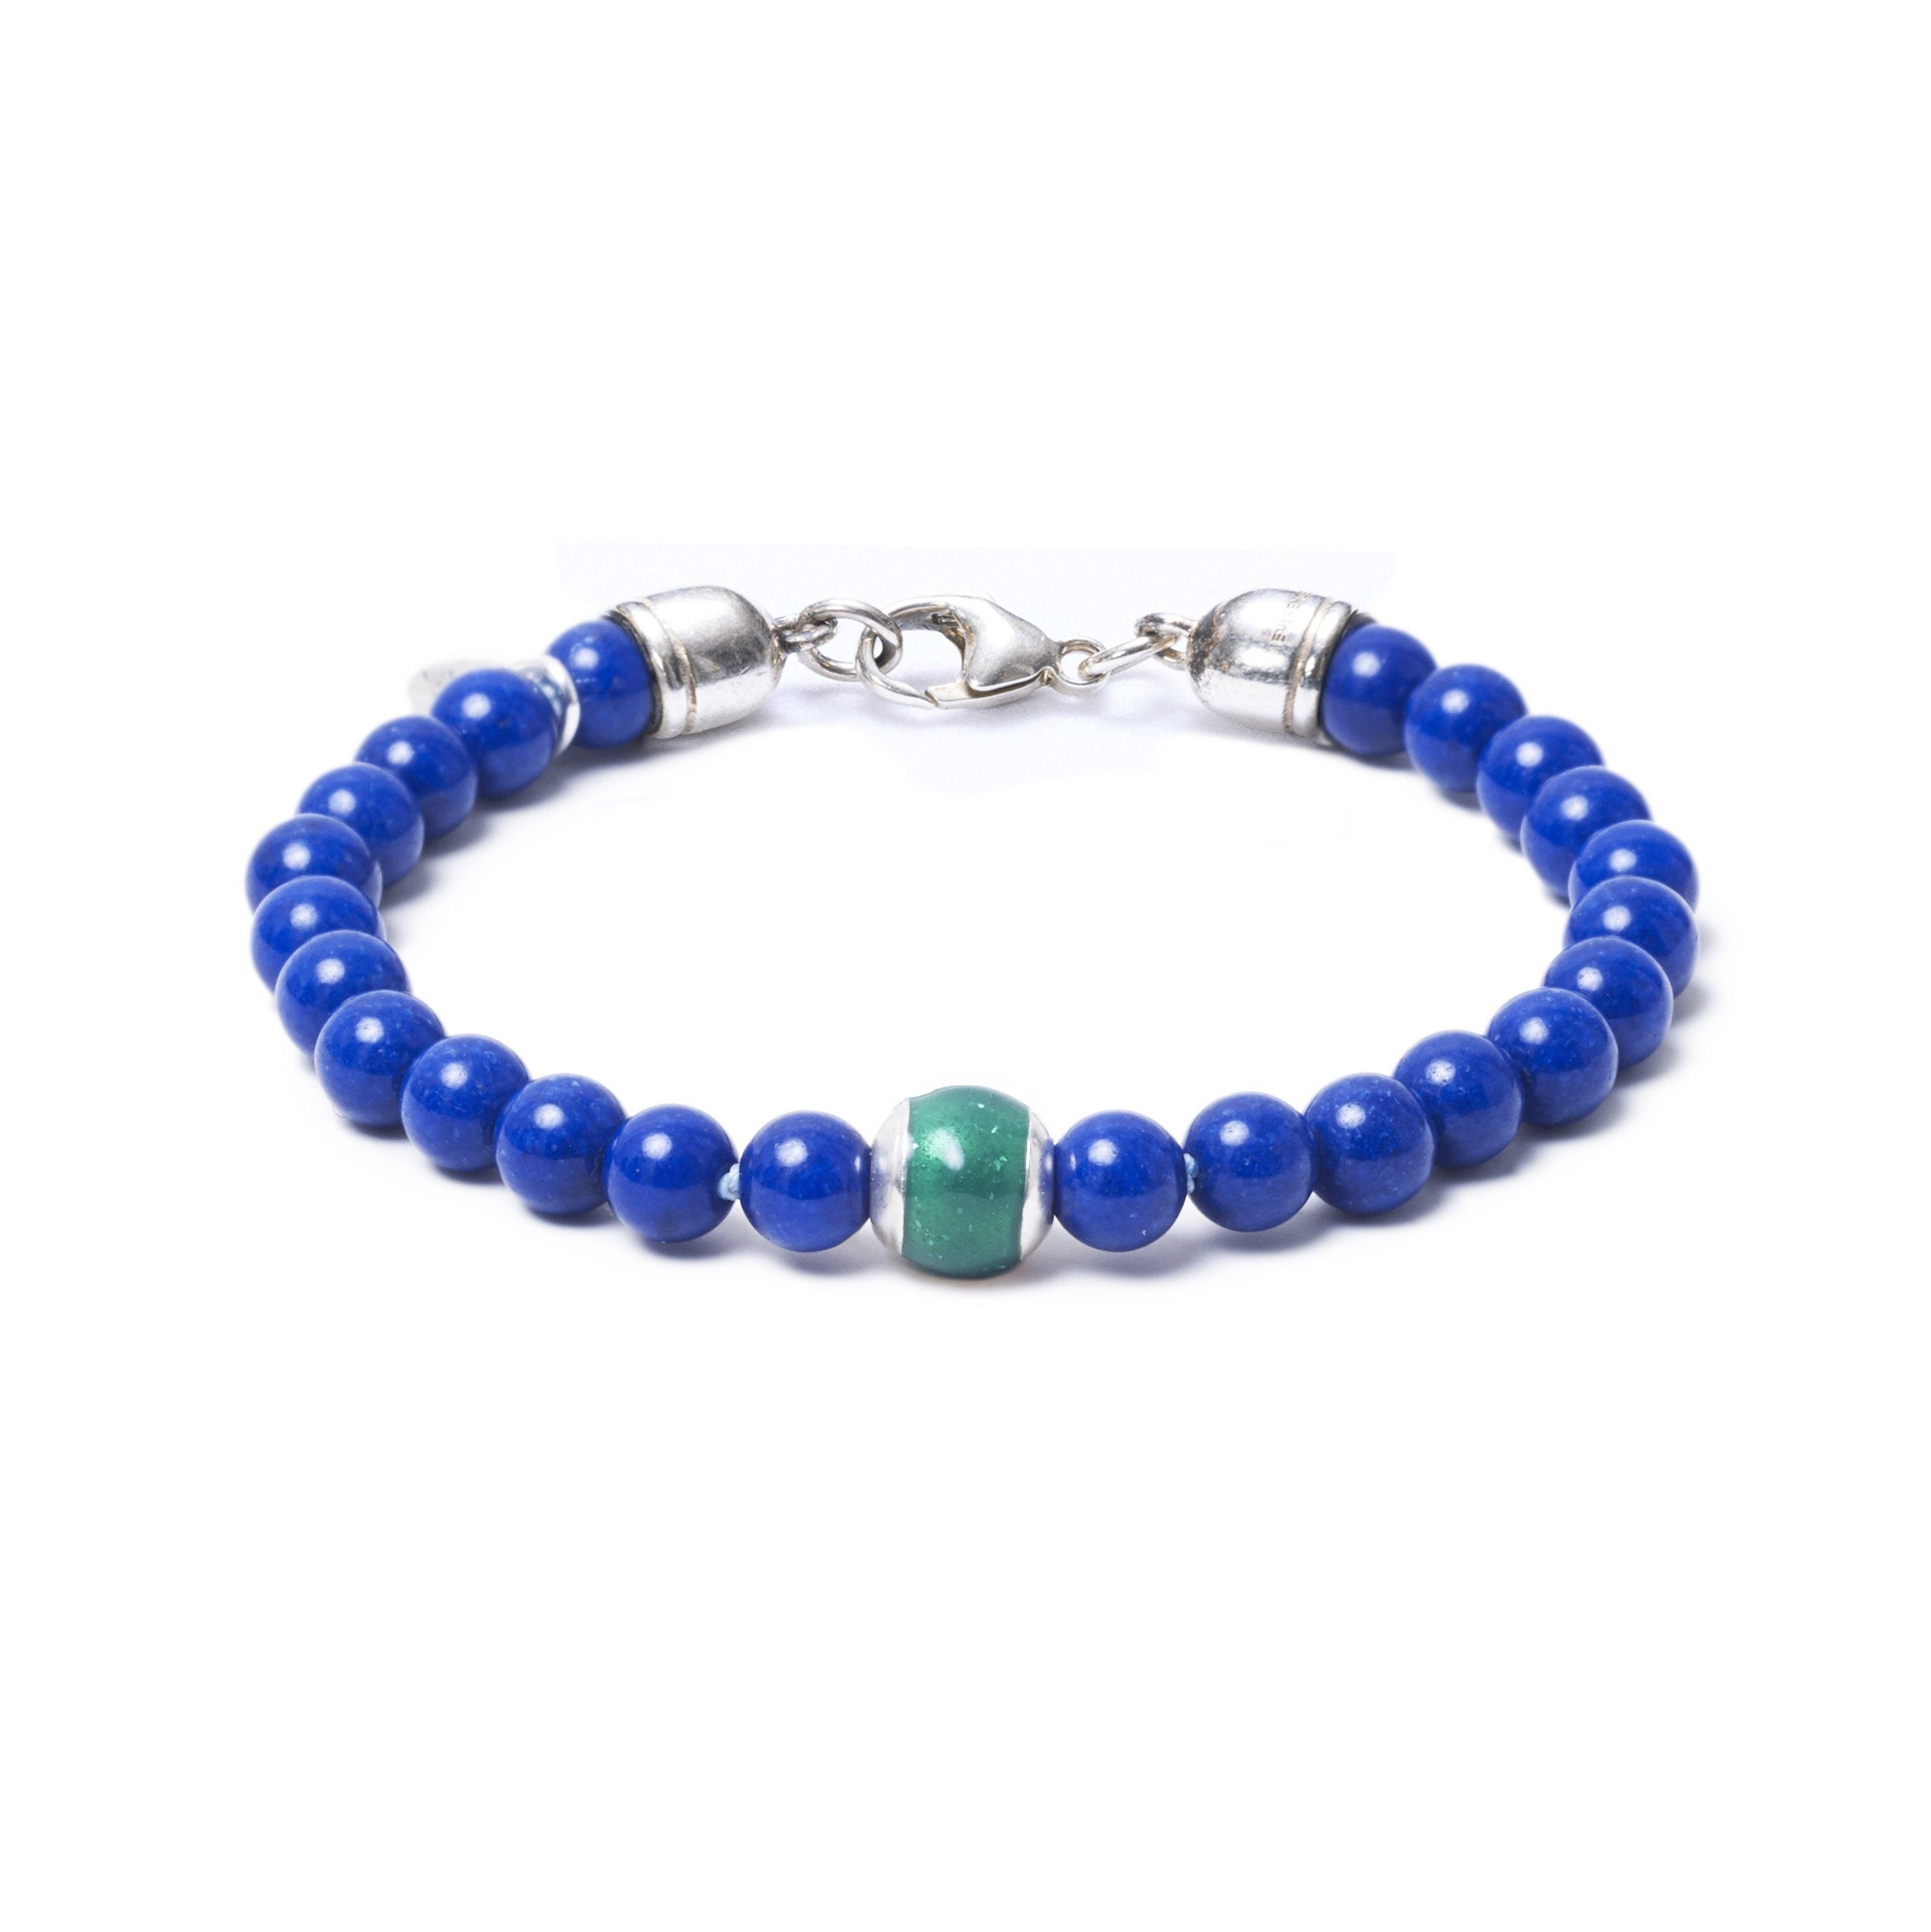 Lapis Lazuli, One Everence Bead everence.life Green Lobster Claw 7